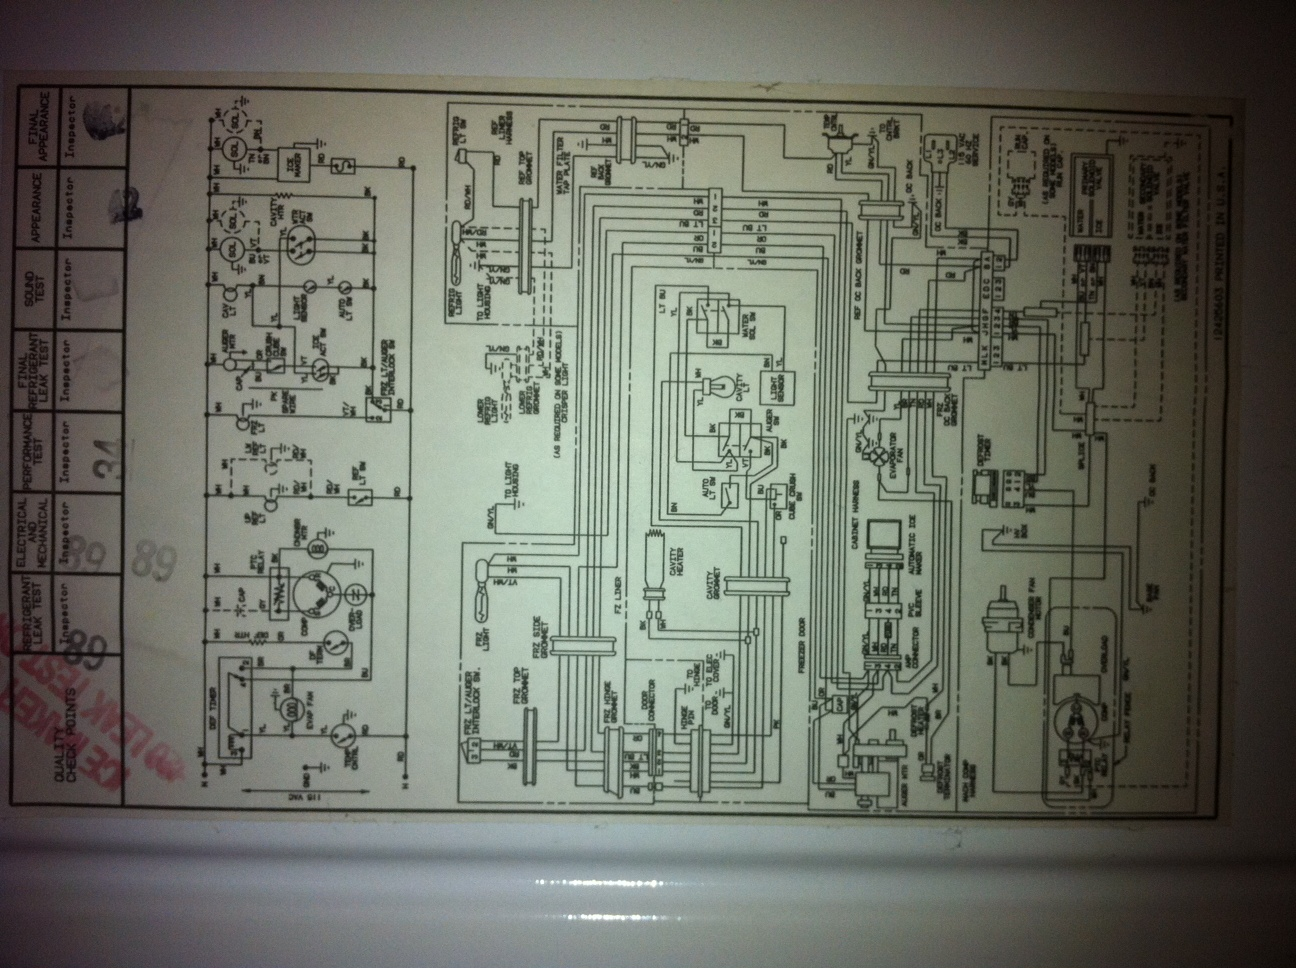 wiring diagram ge side by side refrigerators the wiring diagram amana refrigerator wiring diagram nilza wiring diagram